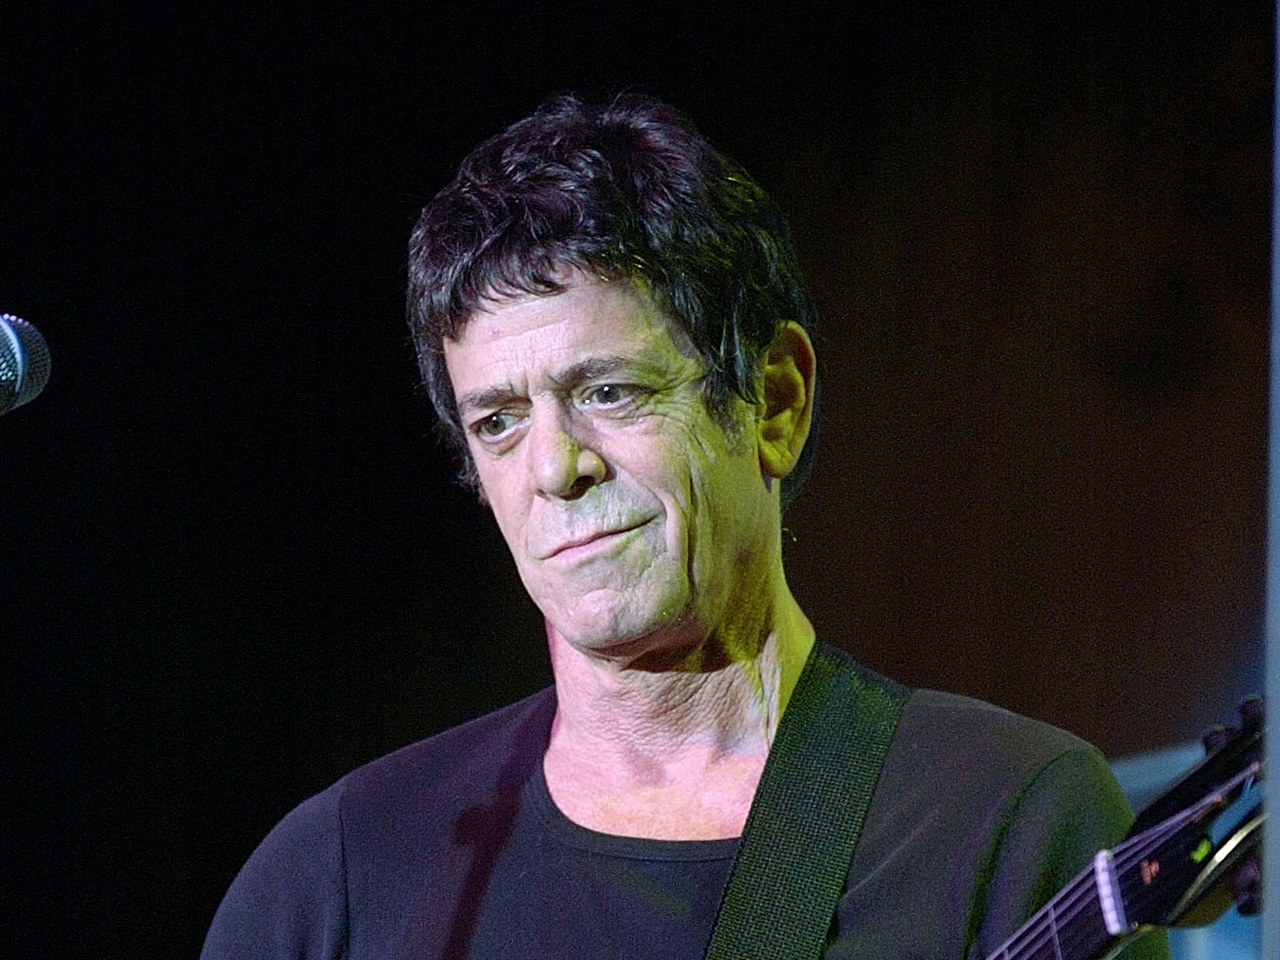 Laurie Anderson Lou Reed, Longtime Influential Rock Star, Dead At 71 - Cbs